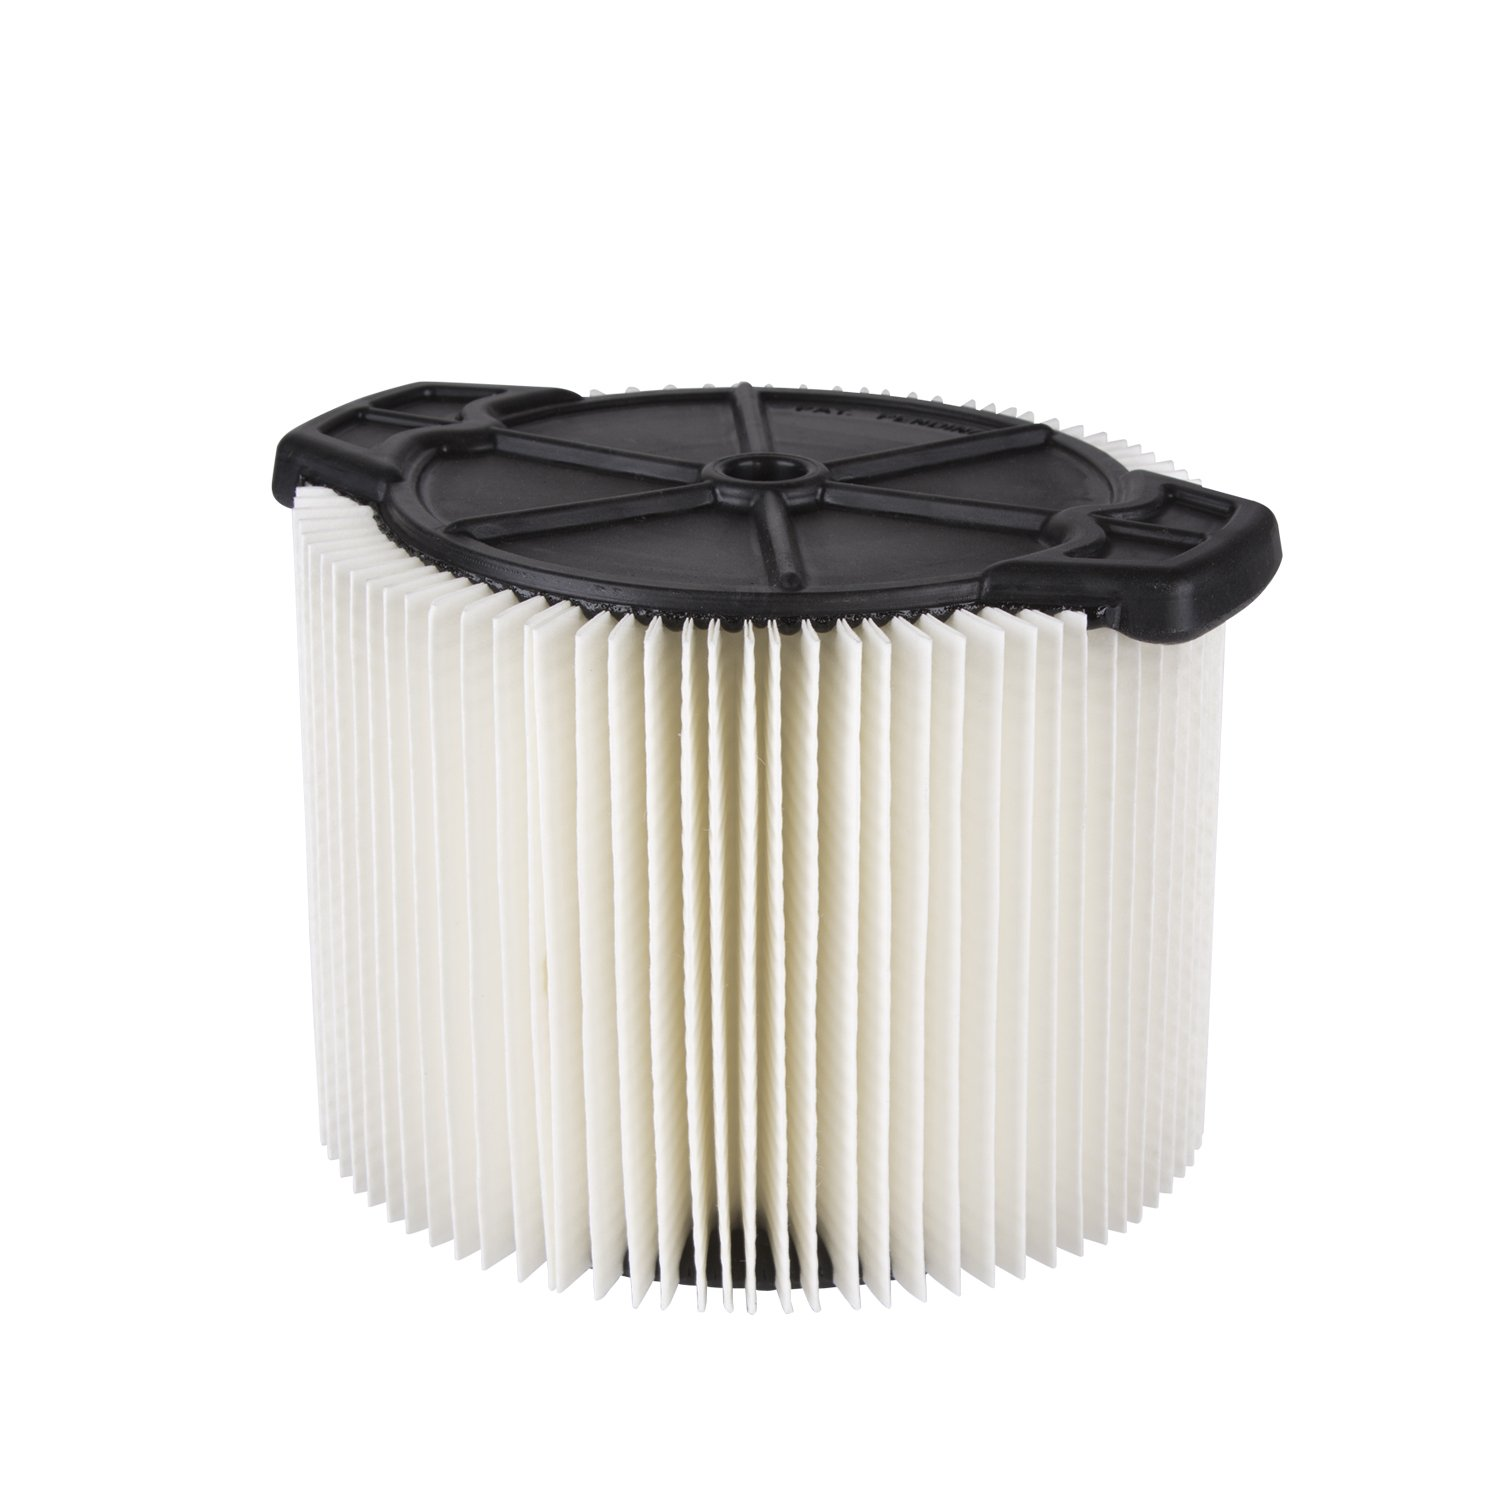 WORKSHOP Wet Dry Vac Filter WS11045F Standard Wet Dry Vacuum Filter (Single Shop Vacuum Cleaner Filter Cartridge) For WORKSHOP 3-Gallon to 4-1/2-Gallon Shop Vacuum Cleaners